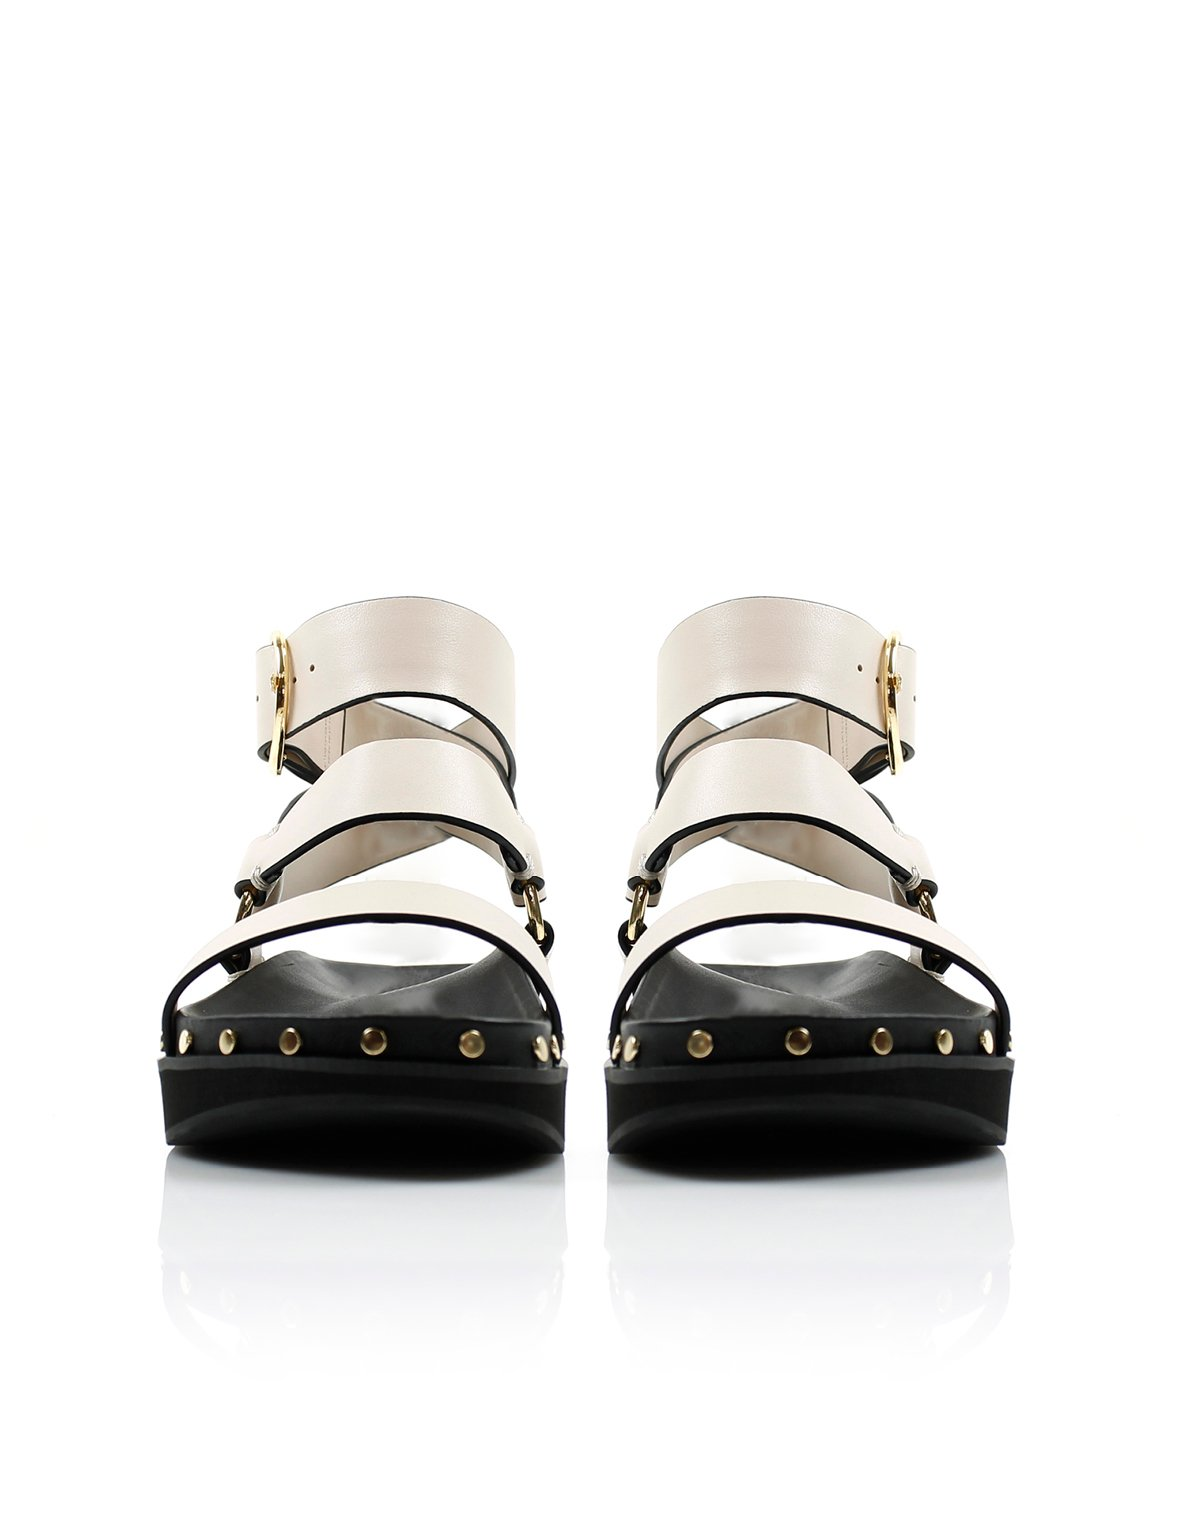 Summer Supply Ltd SHOE La Tribe | Studded Sandal - Bone